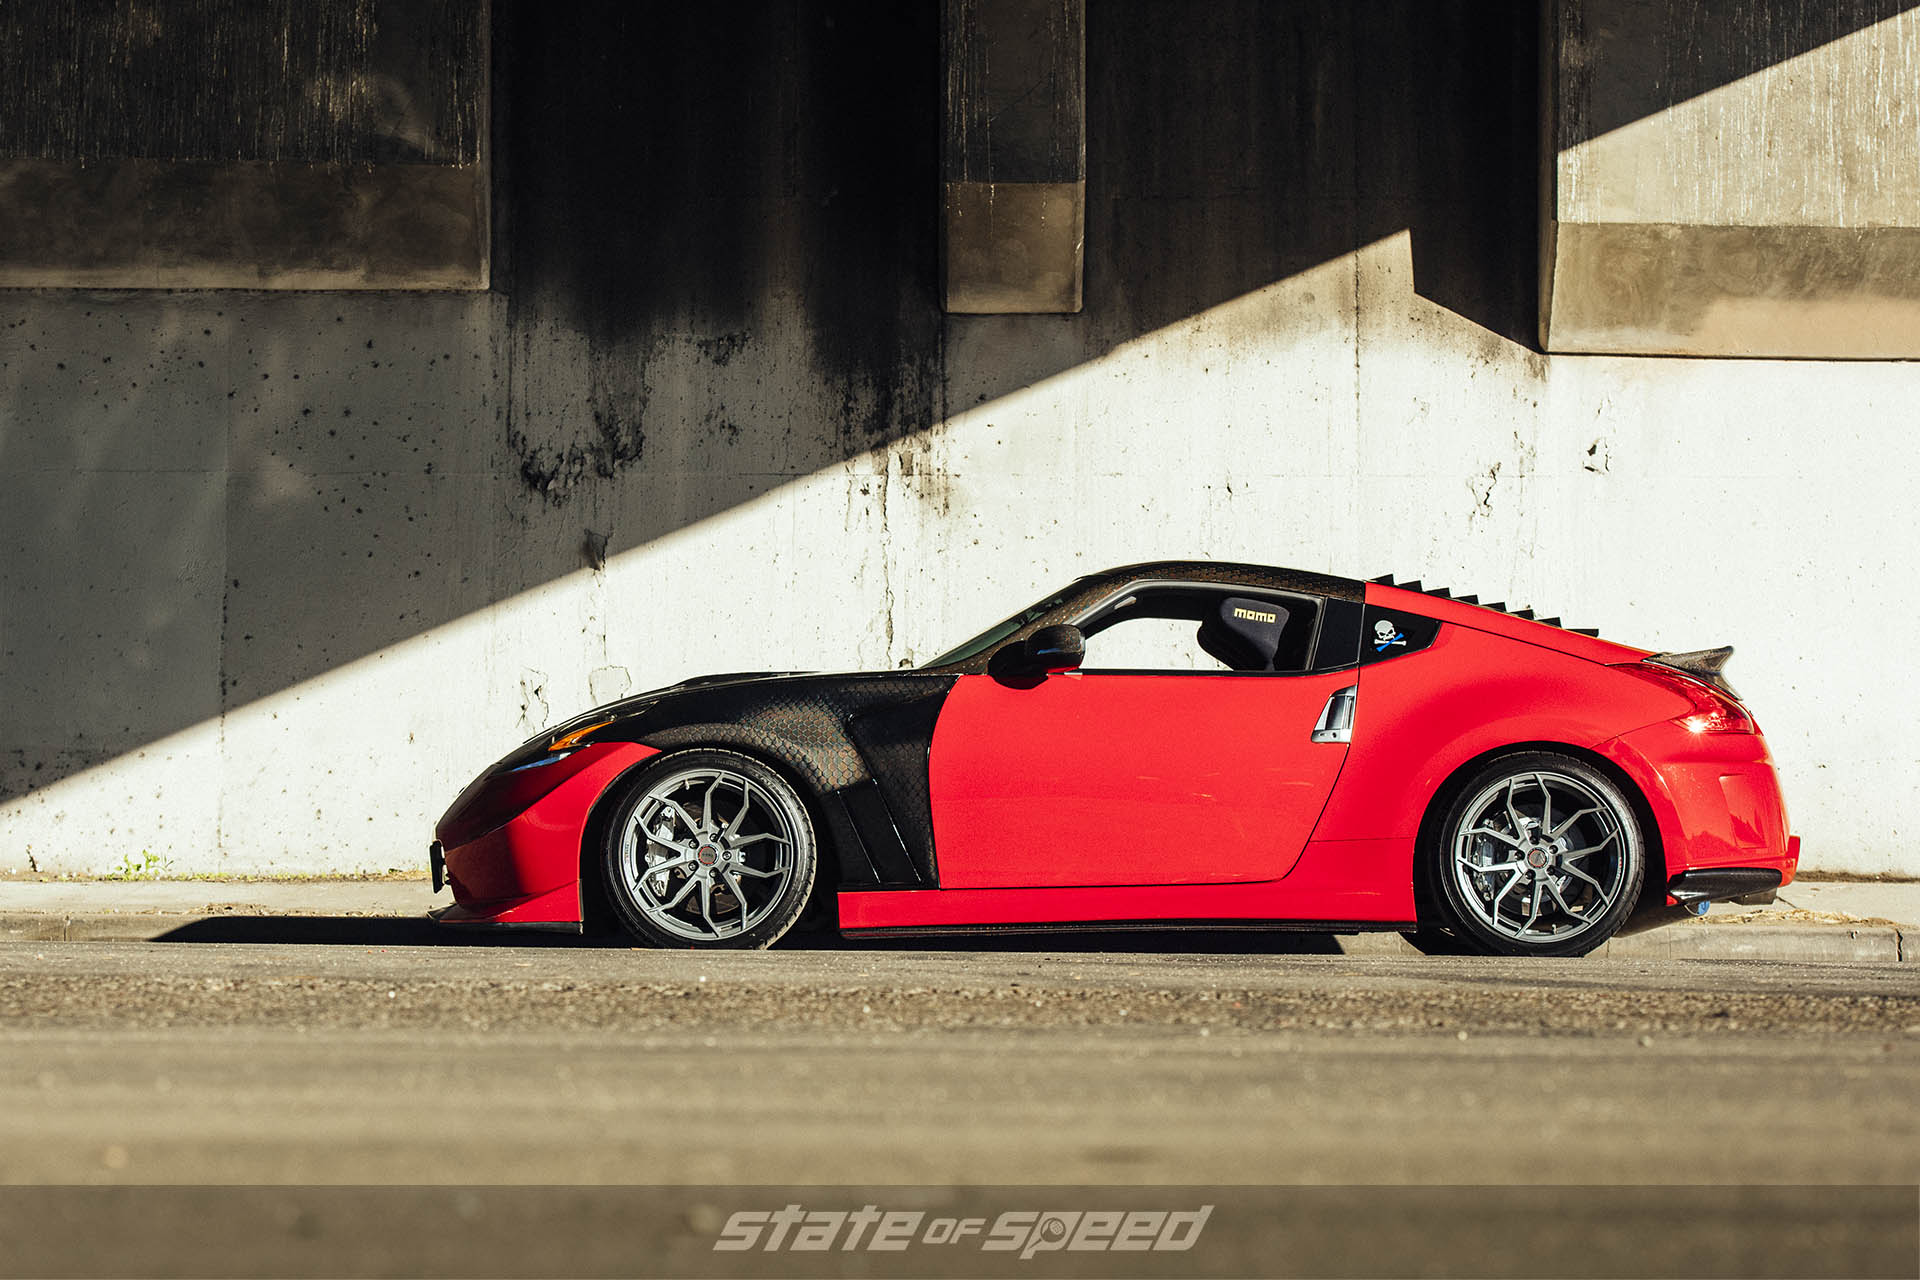 370Z with Momo RF5C Flow formed wheels